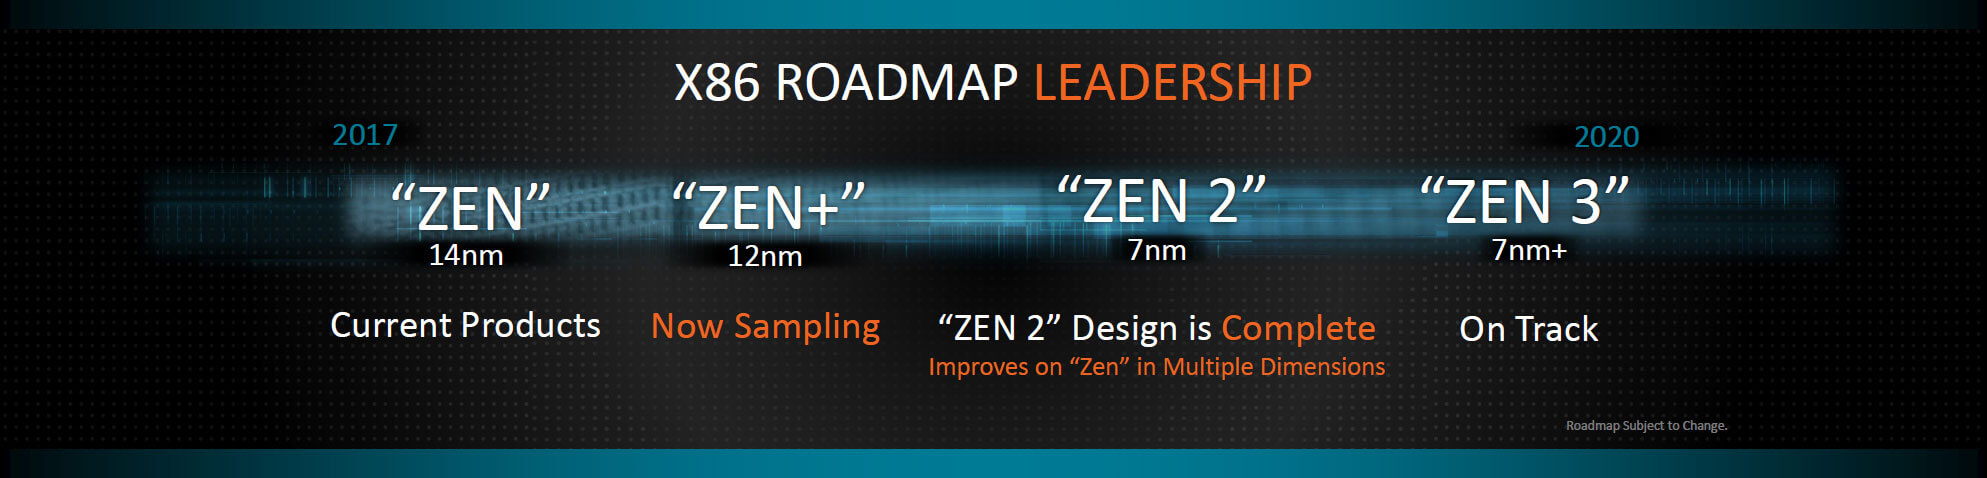 Amd S 2nd Generation Ryzen Cpus Are Coming Out In April 2018 Vega 7nm Gpu Launches In 2018